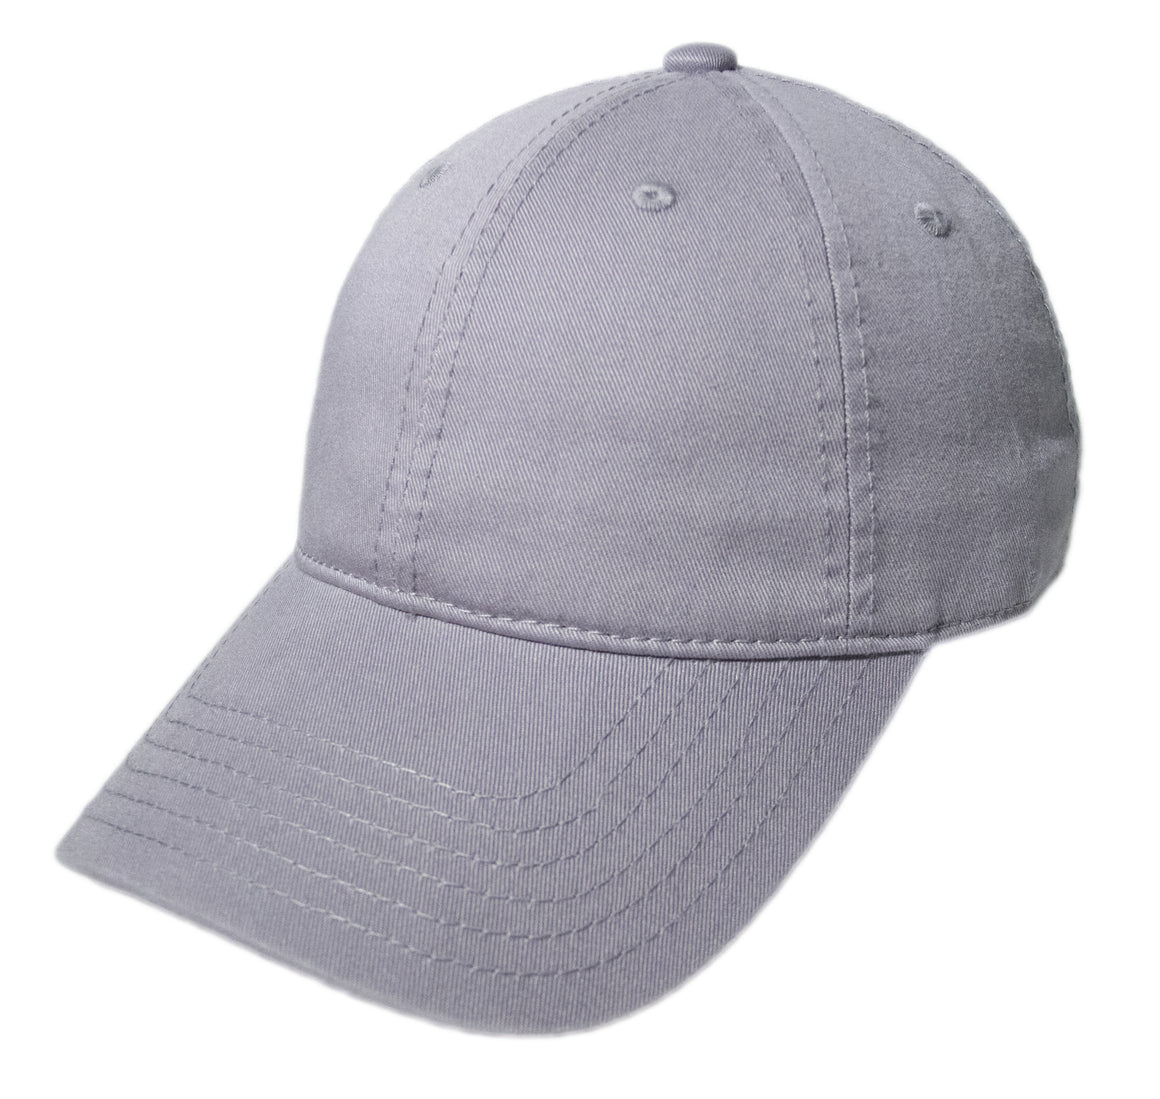 Blank Heavy Washed Cotton Cap - Light Grey